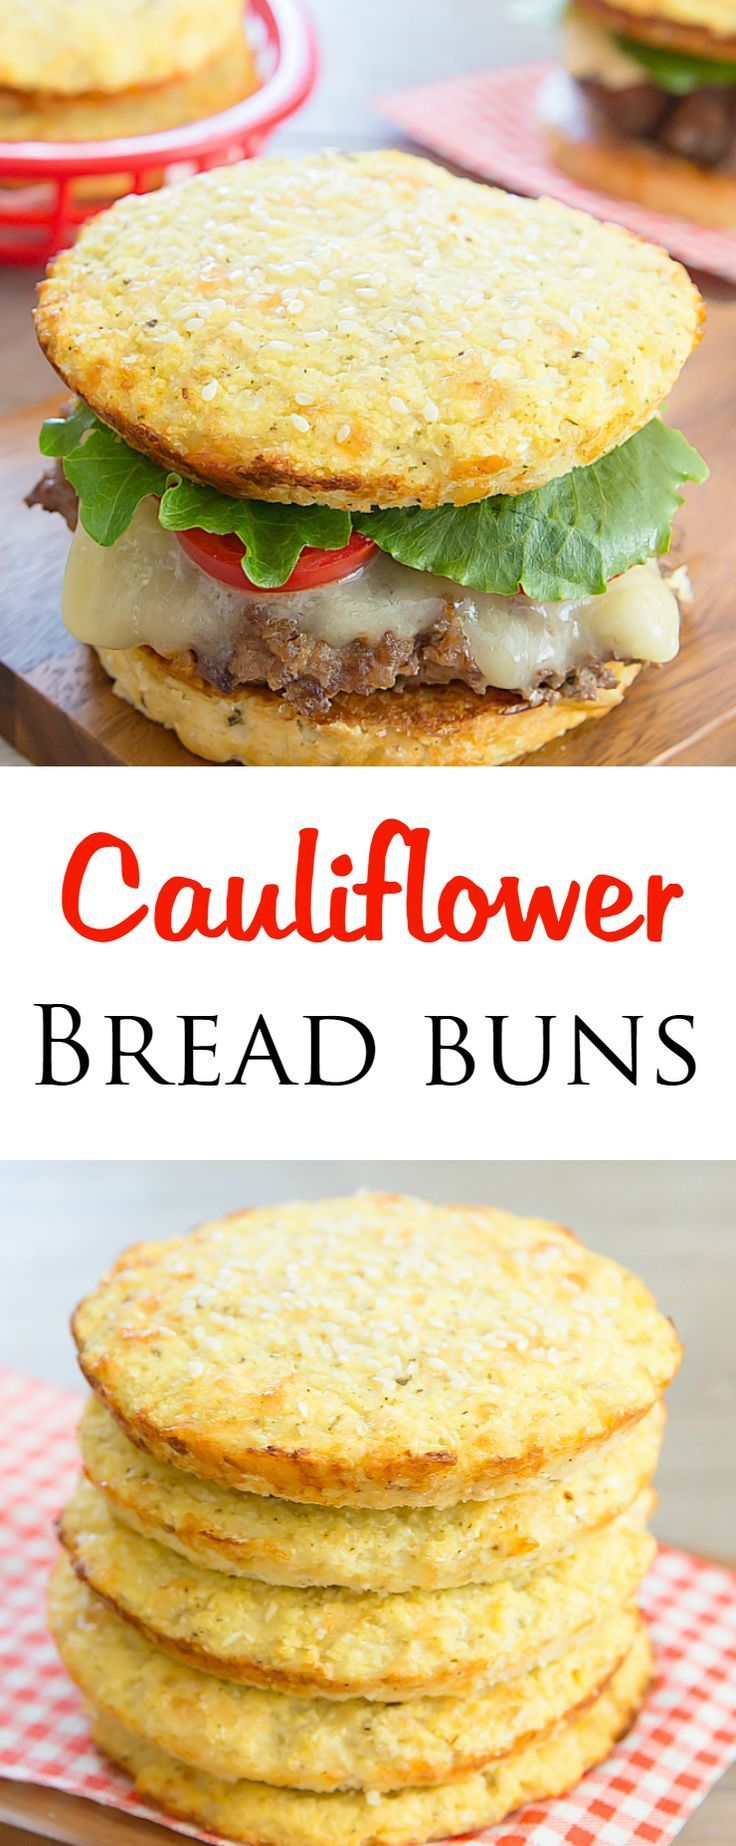 Cauliflower Bread Buns #lowcarb #veggielove